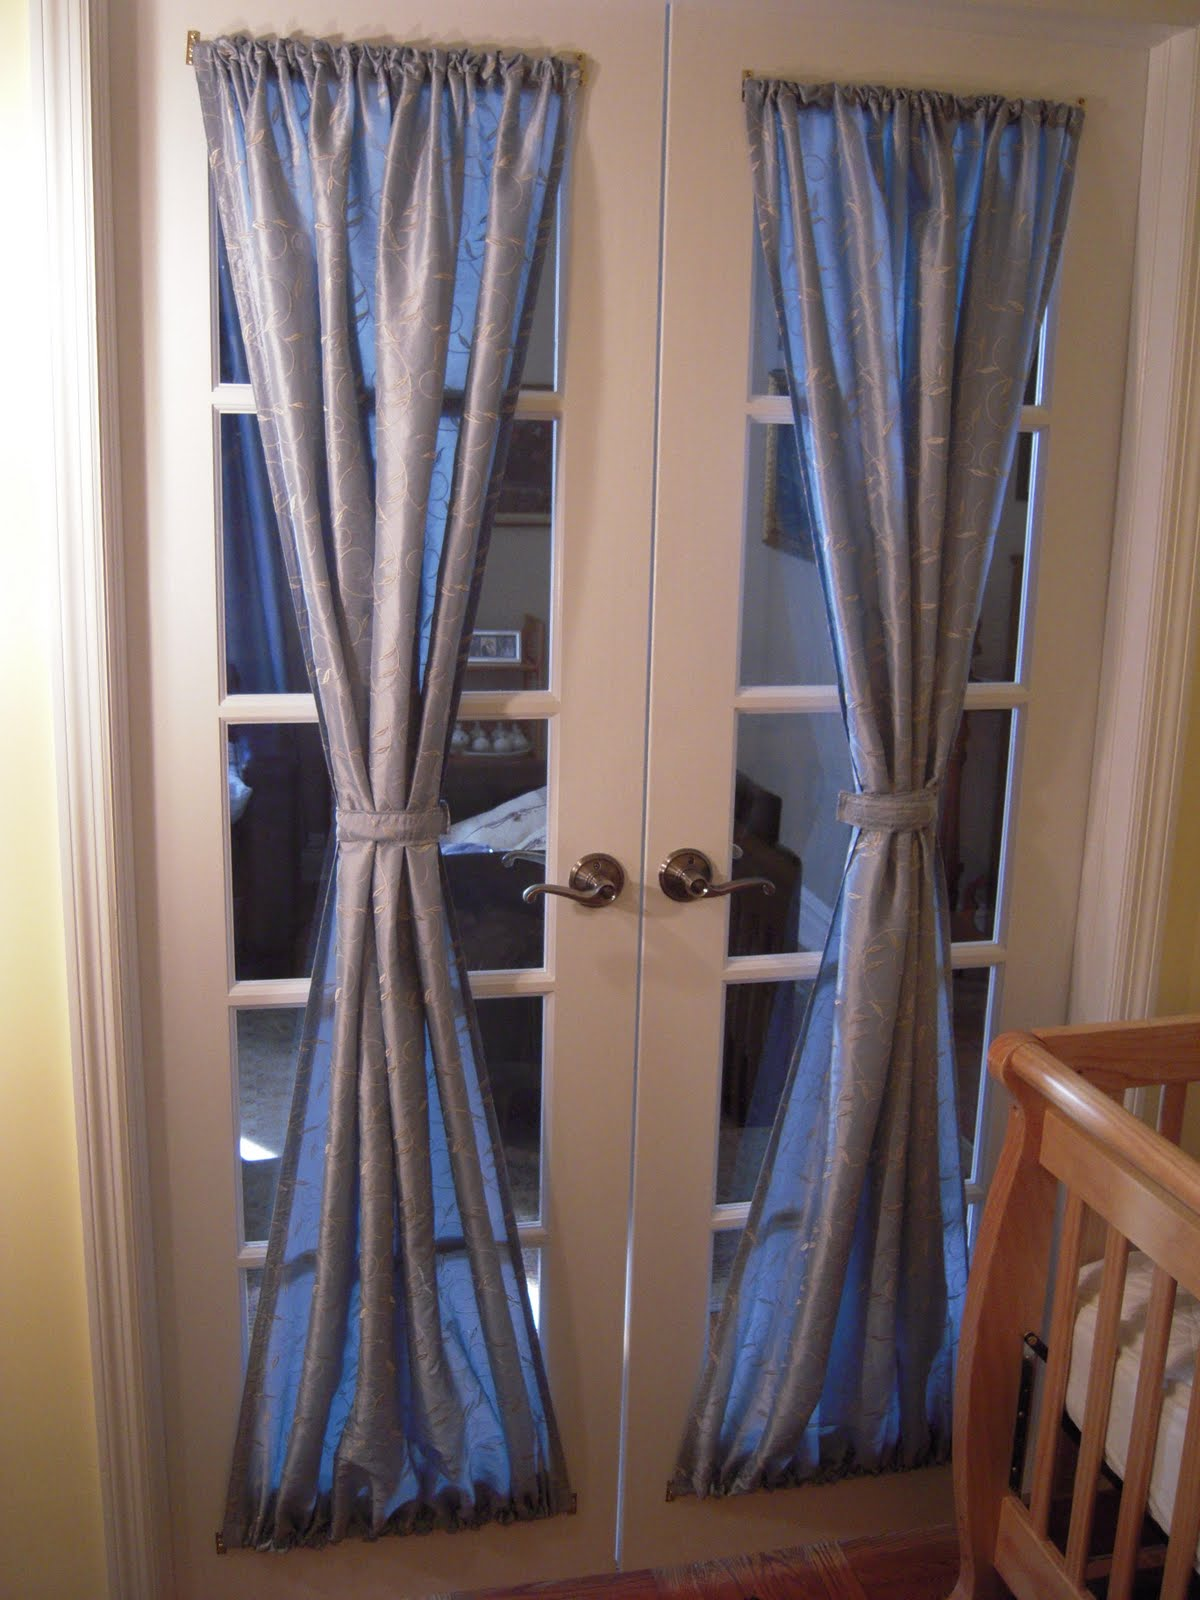 Charing x curtains for french doors some new ideas - Curtain for kitchen door ...